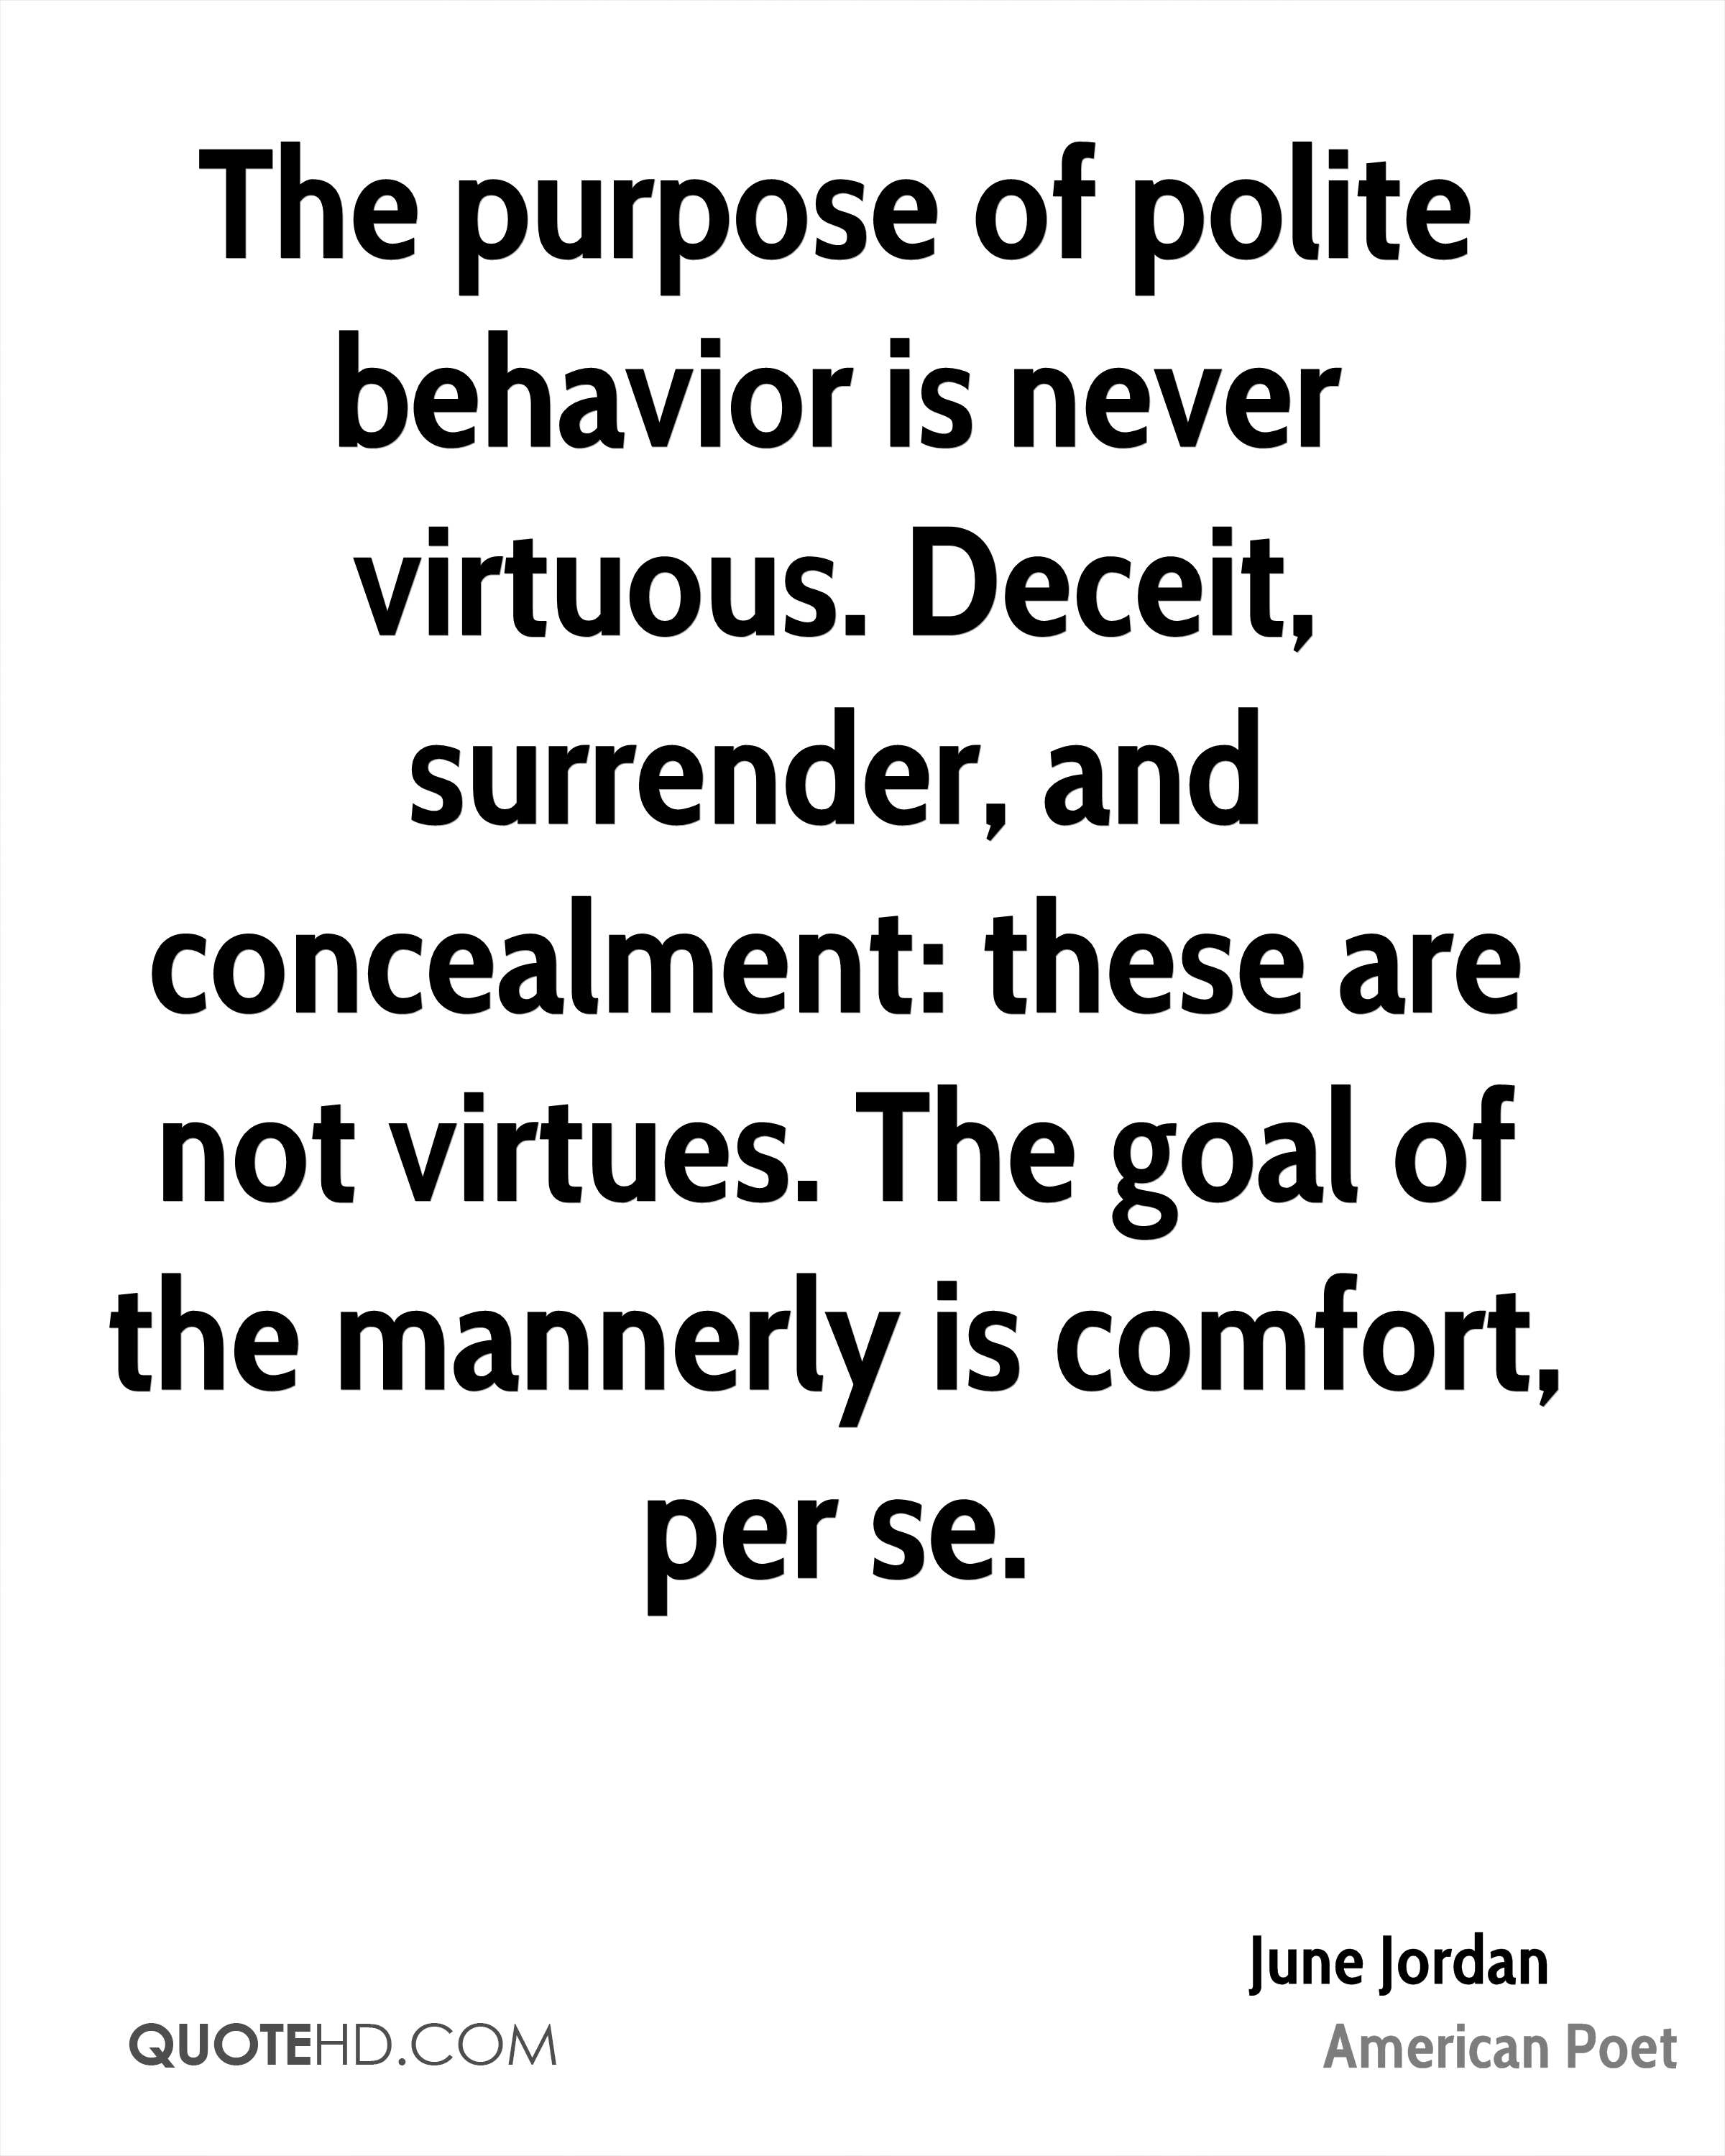 The purpose of polite behavior is never virtuous. Deceit, surrender, and concealment: these are not virtues. The goal of the mannerly is comfort, per se.